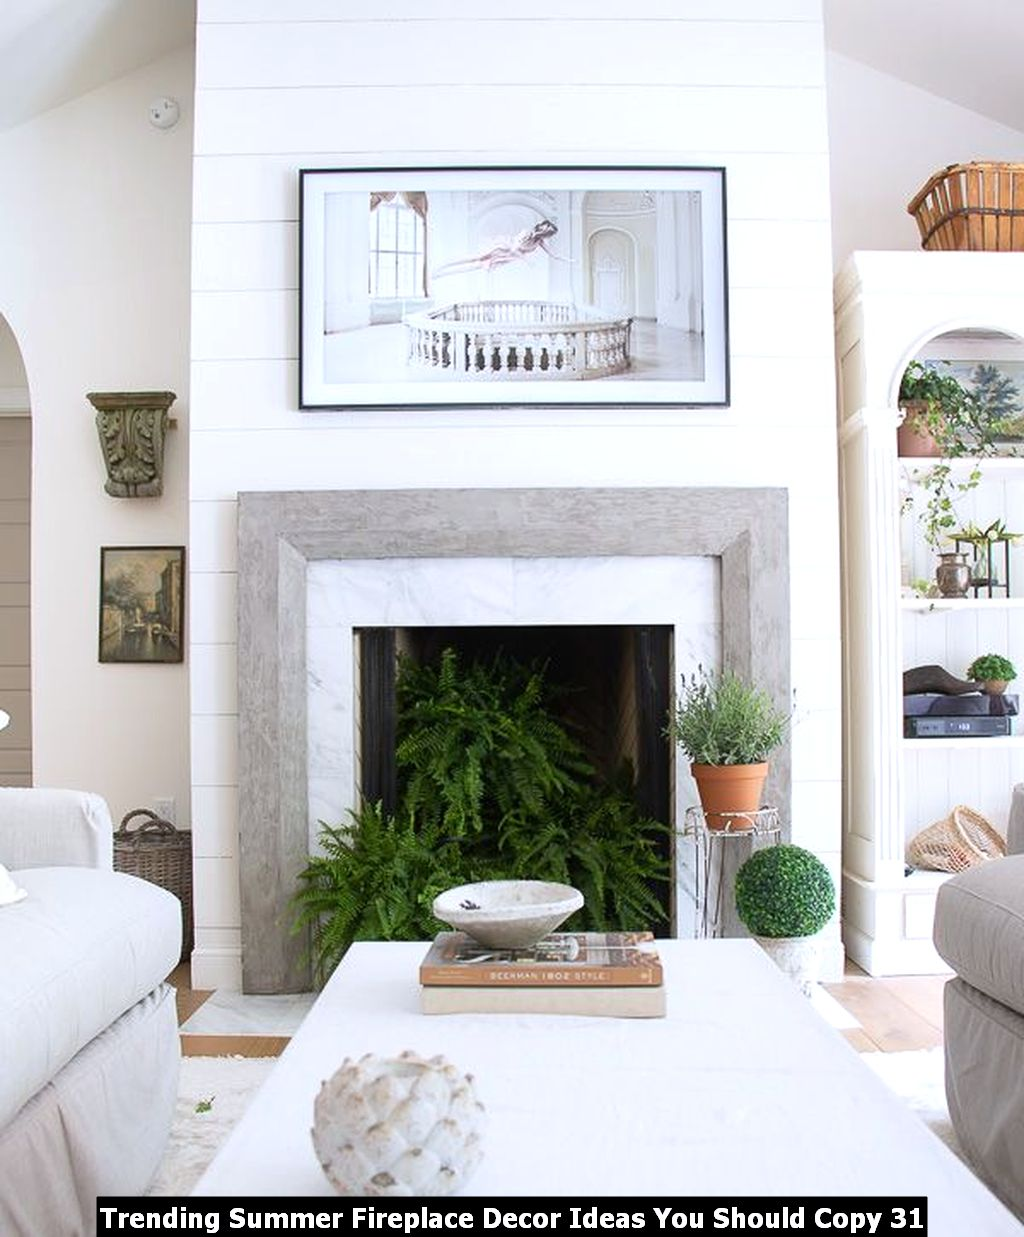 Trending Summer Fireplace Decor Ideas You Should Copy 31